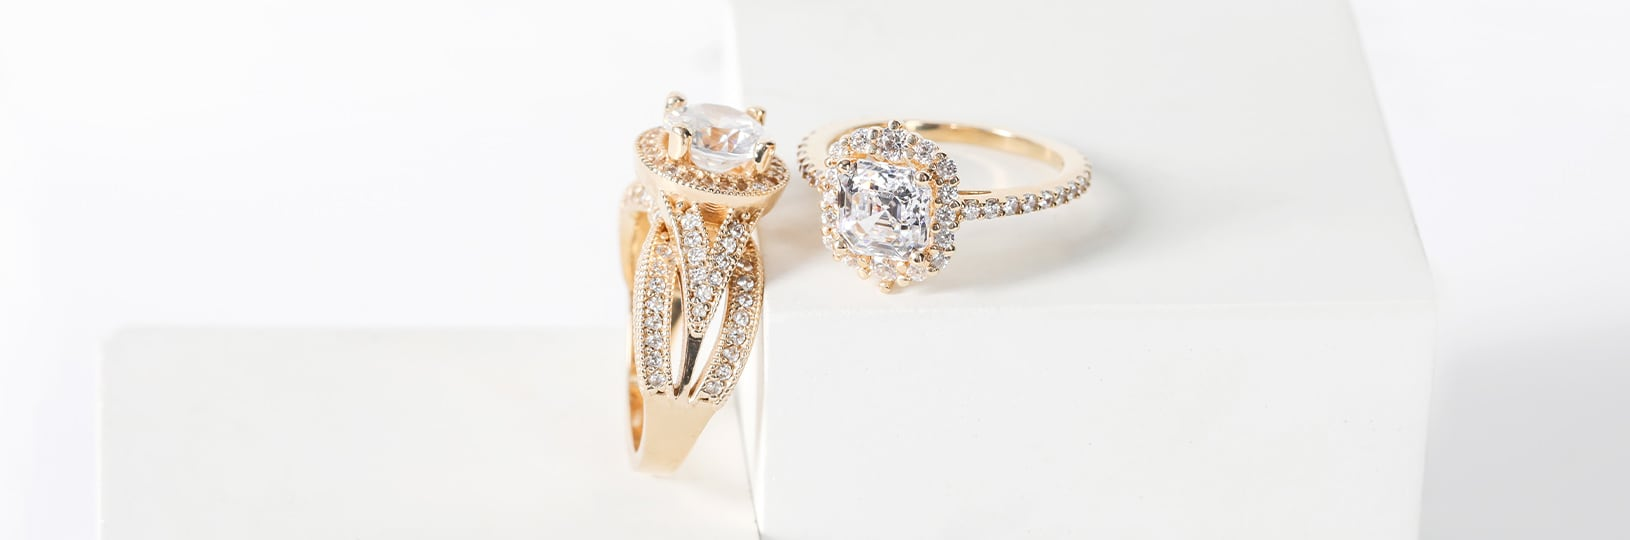 Two engagement rings side by side